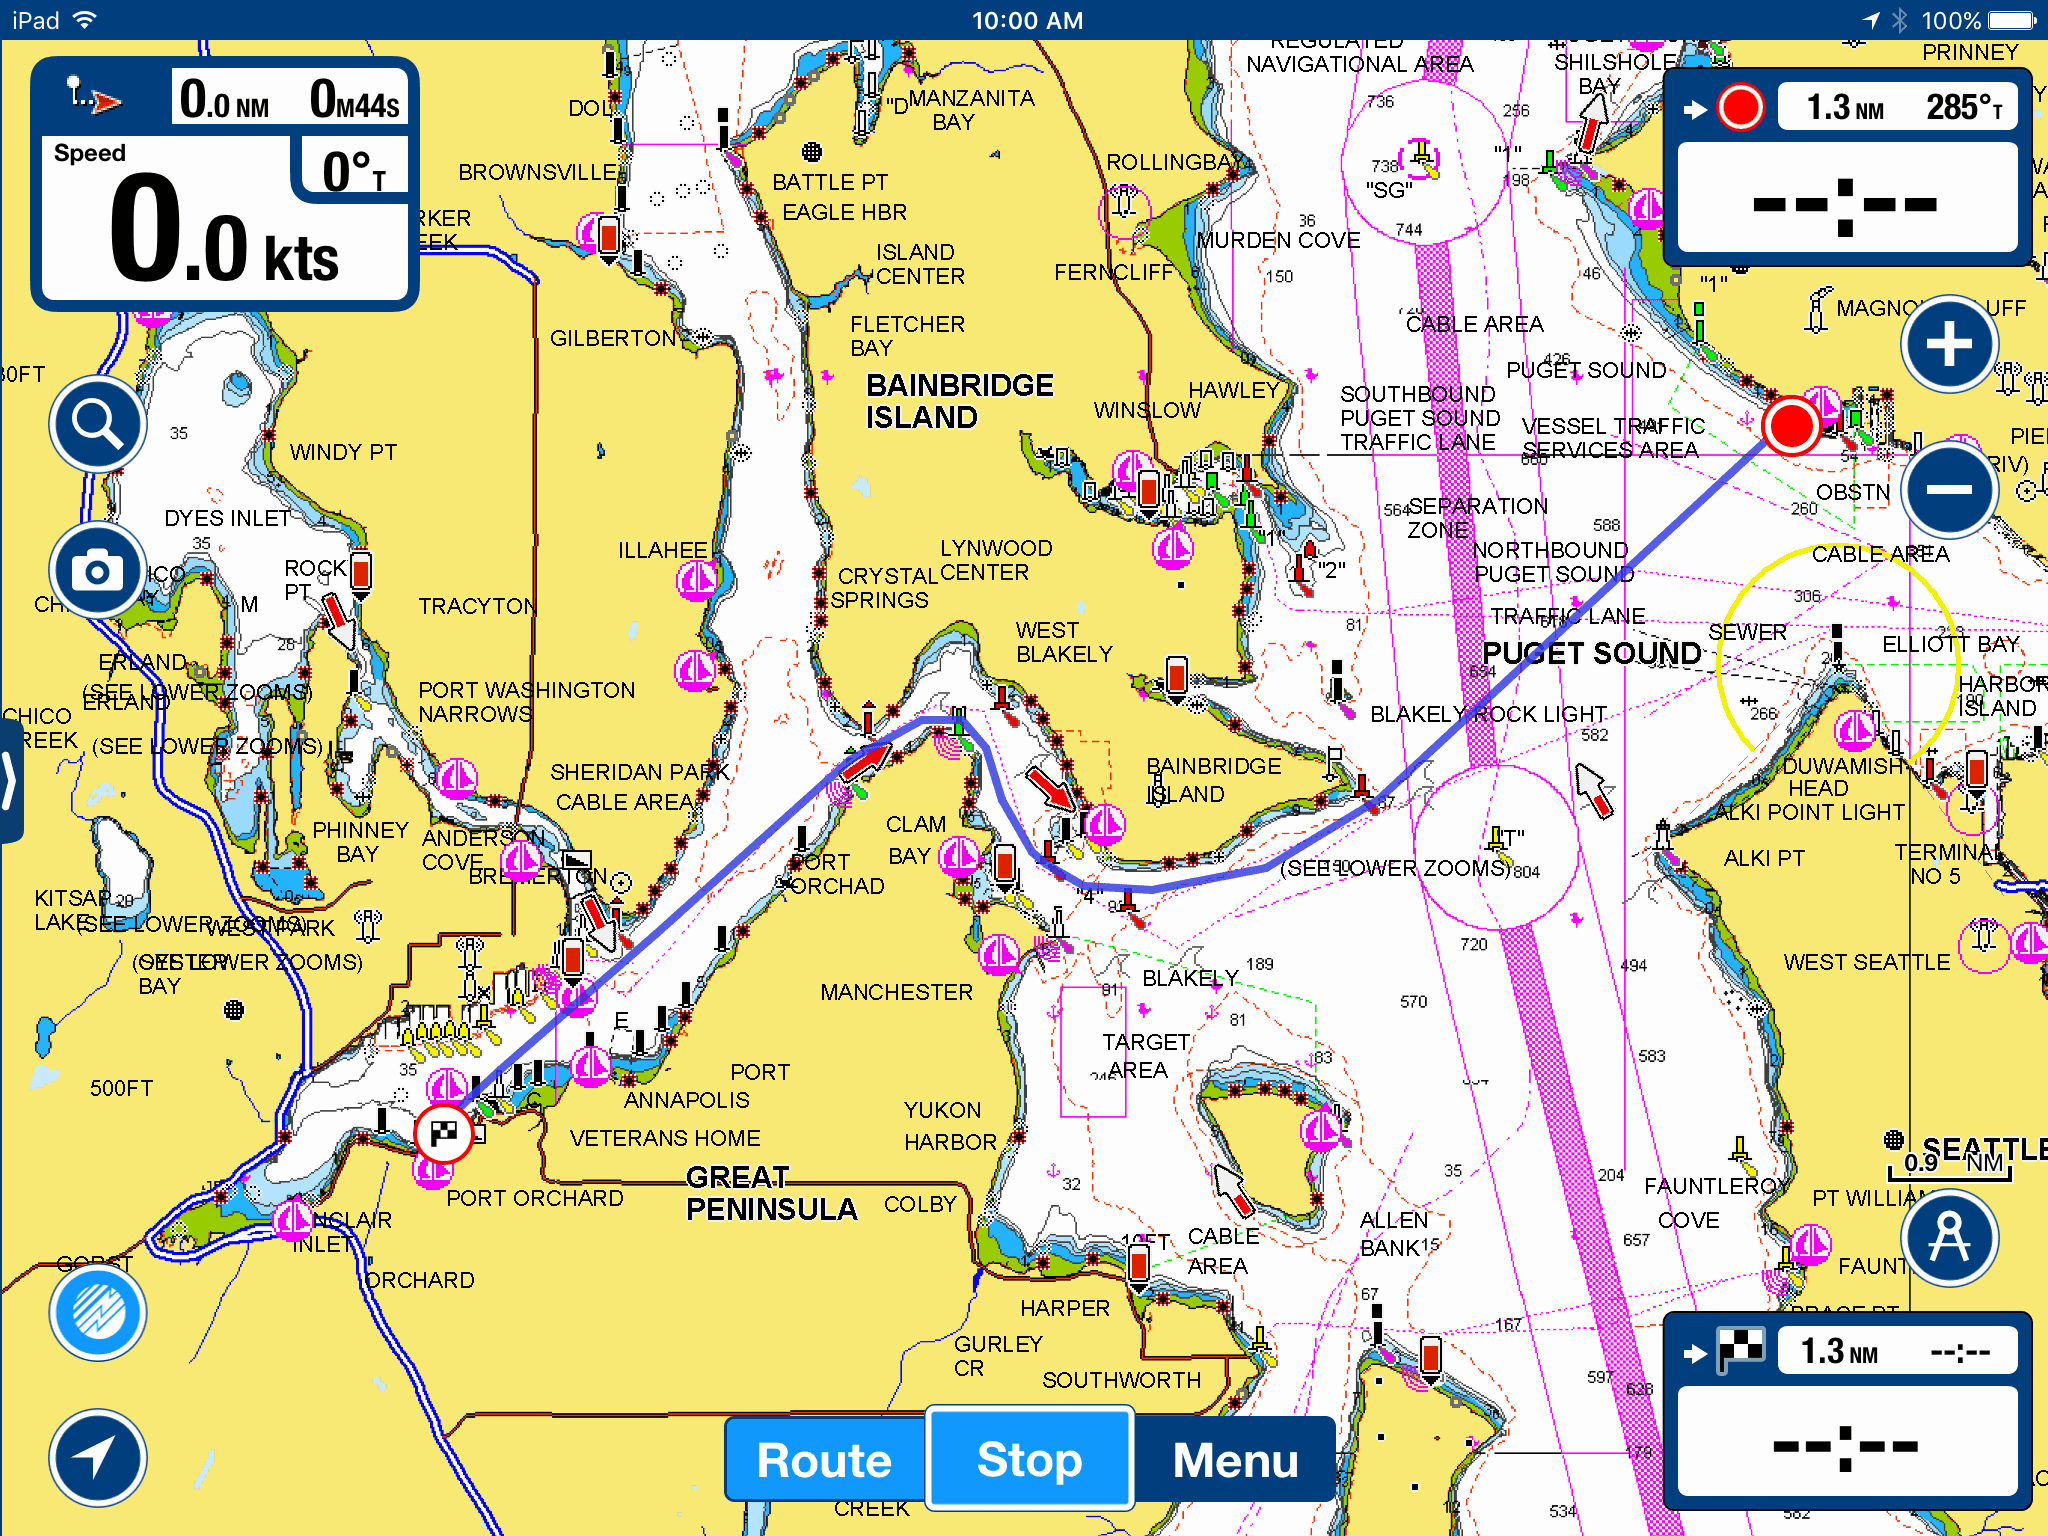 Surface Pro 4 is a great boat computer